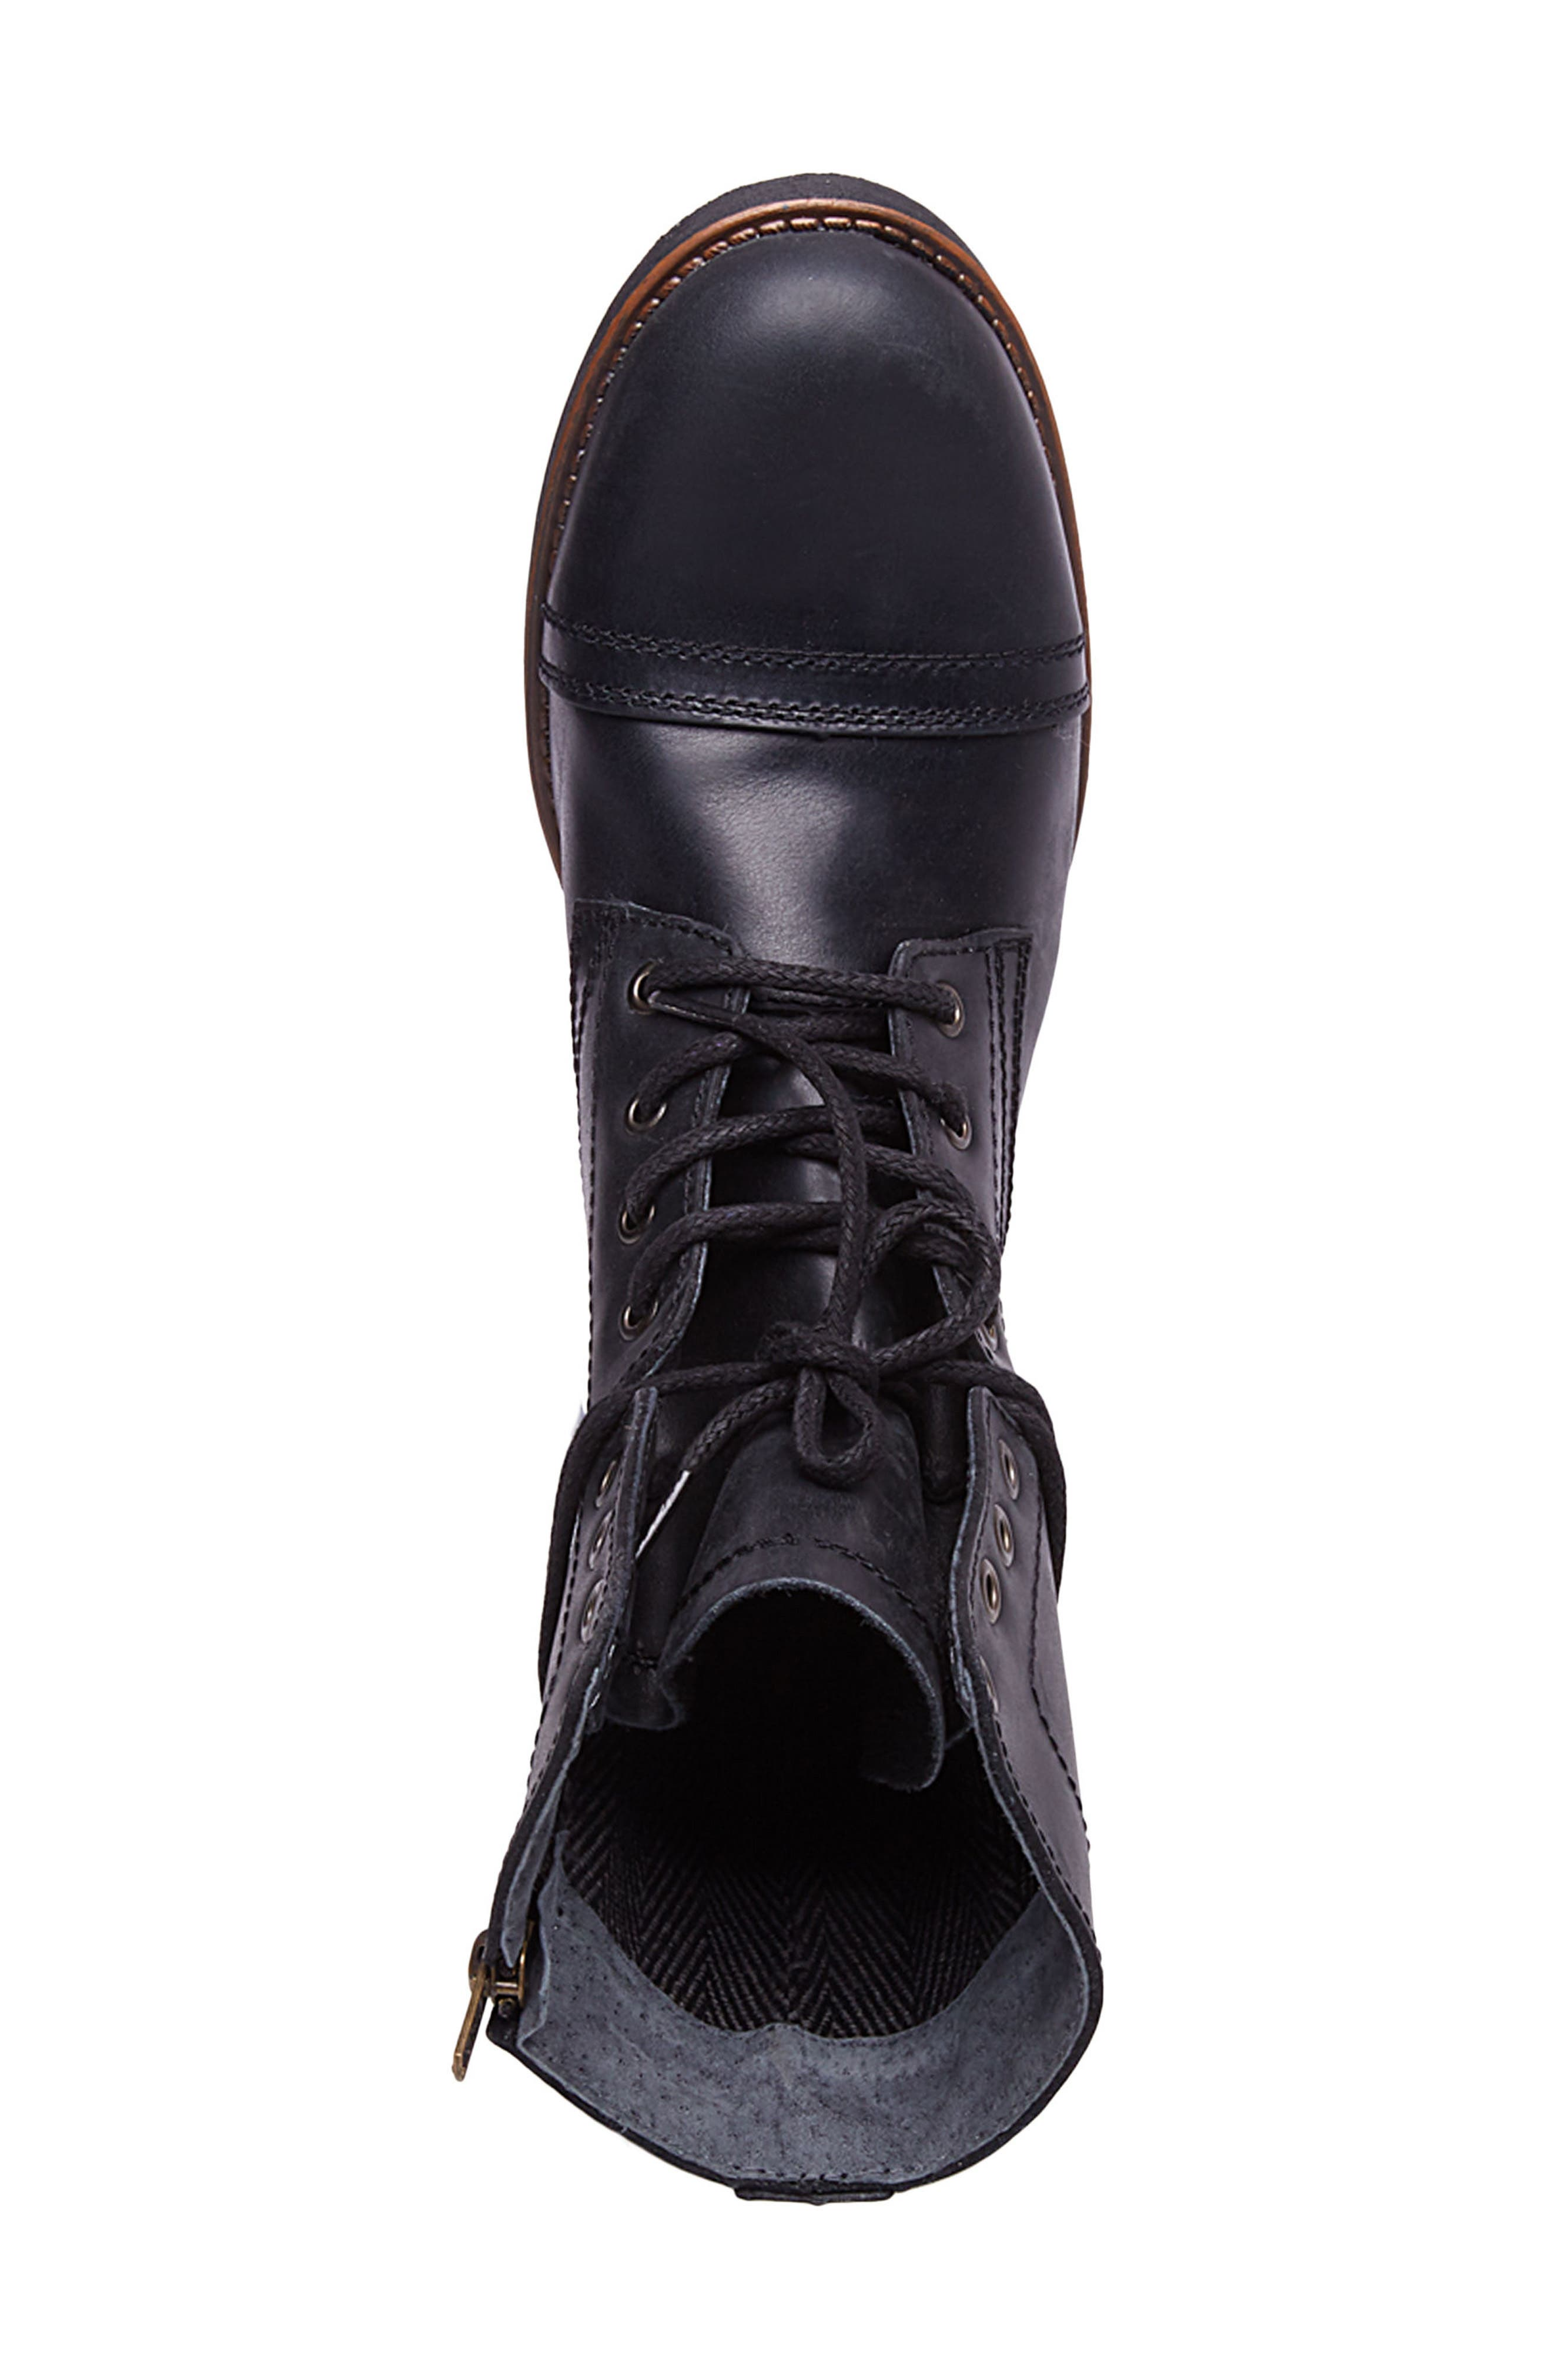 Troopah-C Cap Toe Boot,                             Alternate thumbnail 5, color,                             BLACK LEATHER